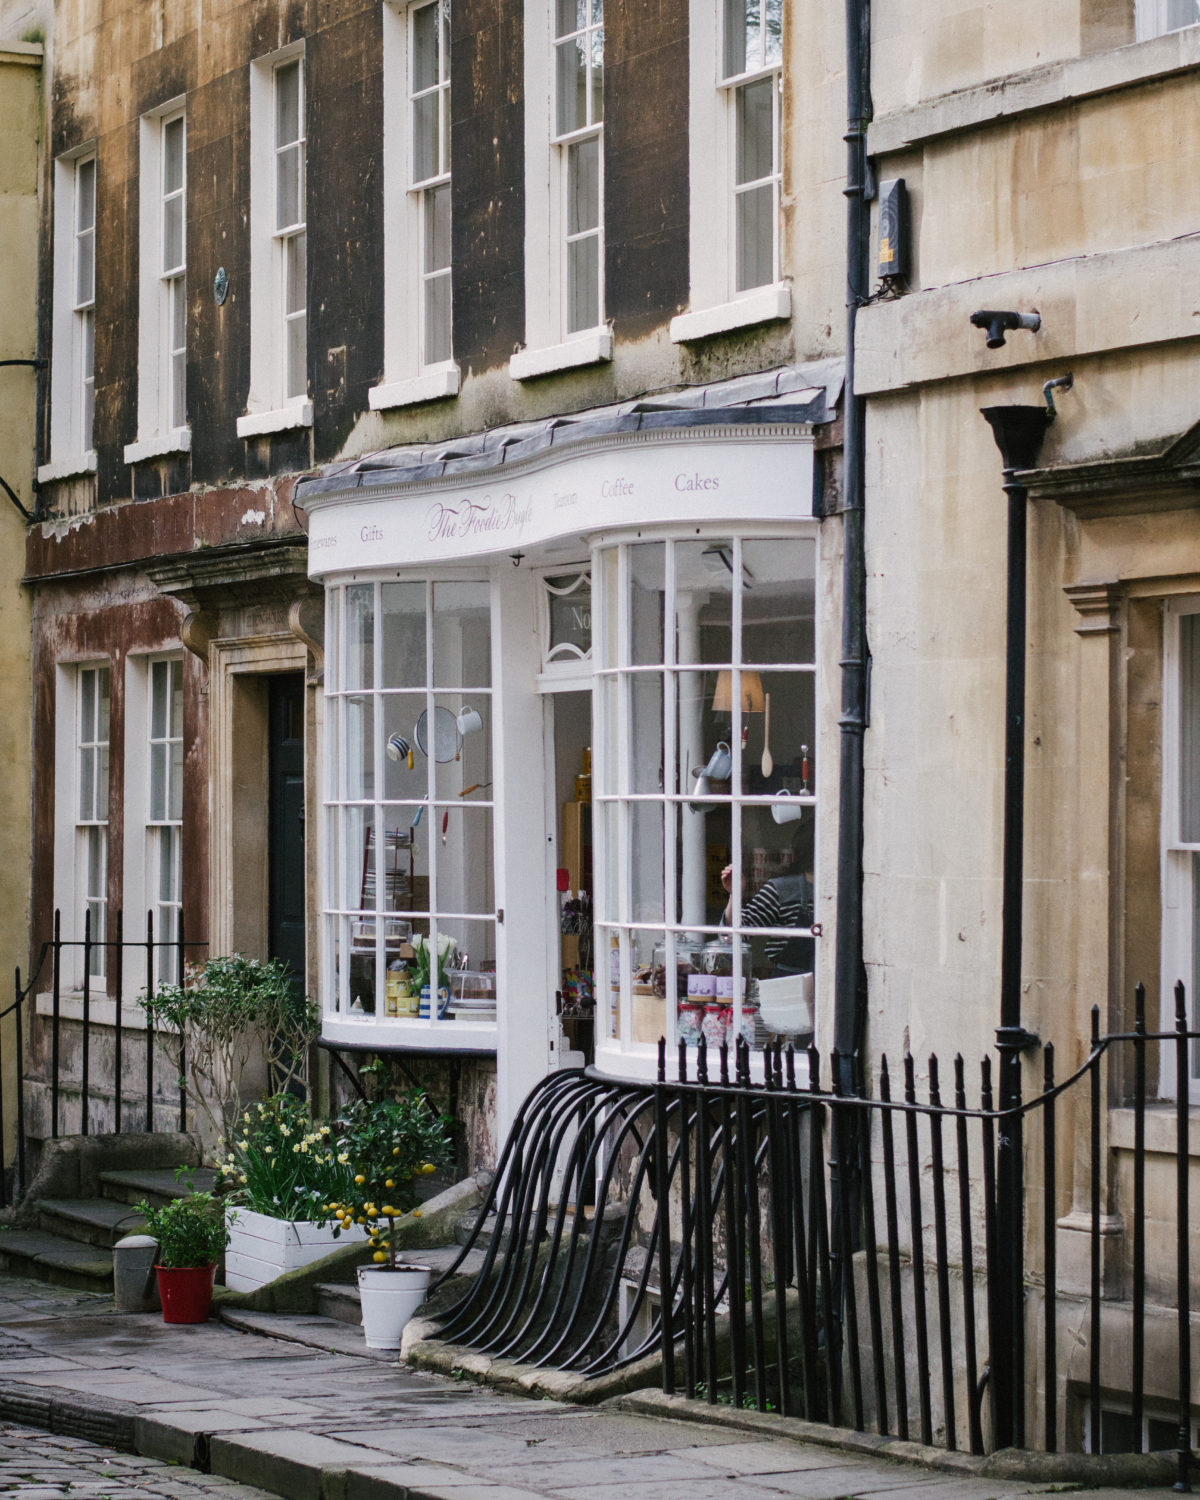 Bath independent tour littlegreenshed blog 2017